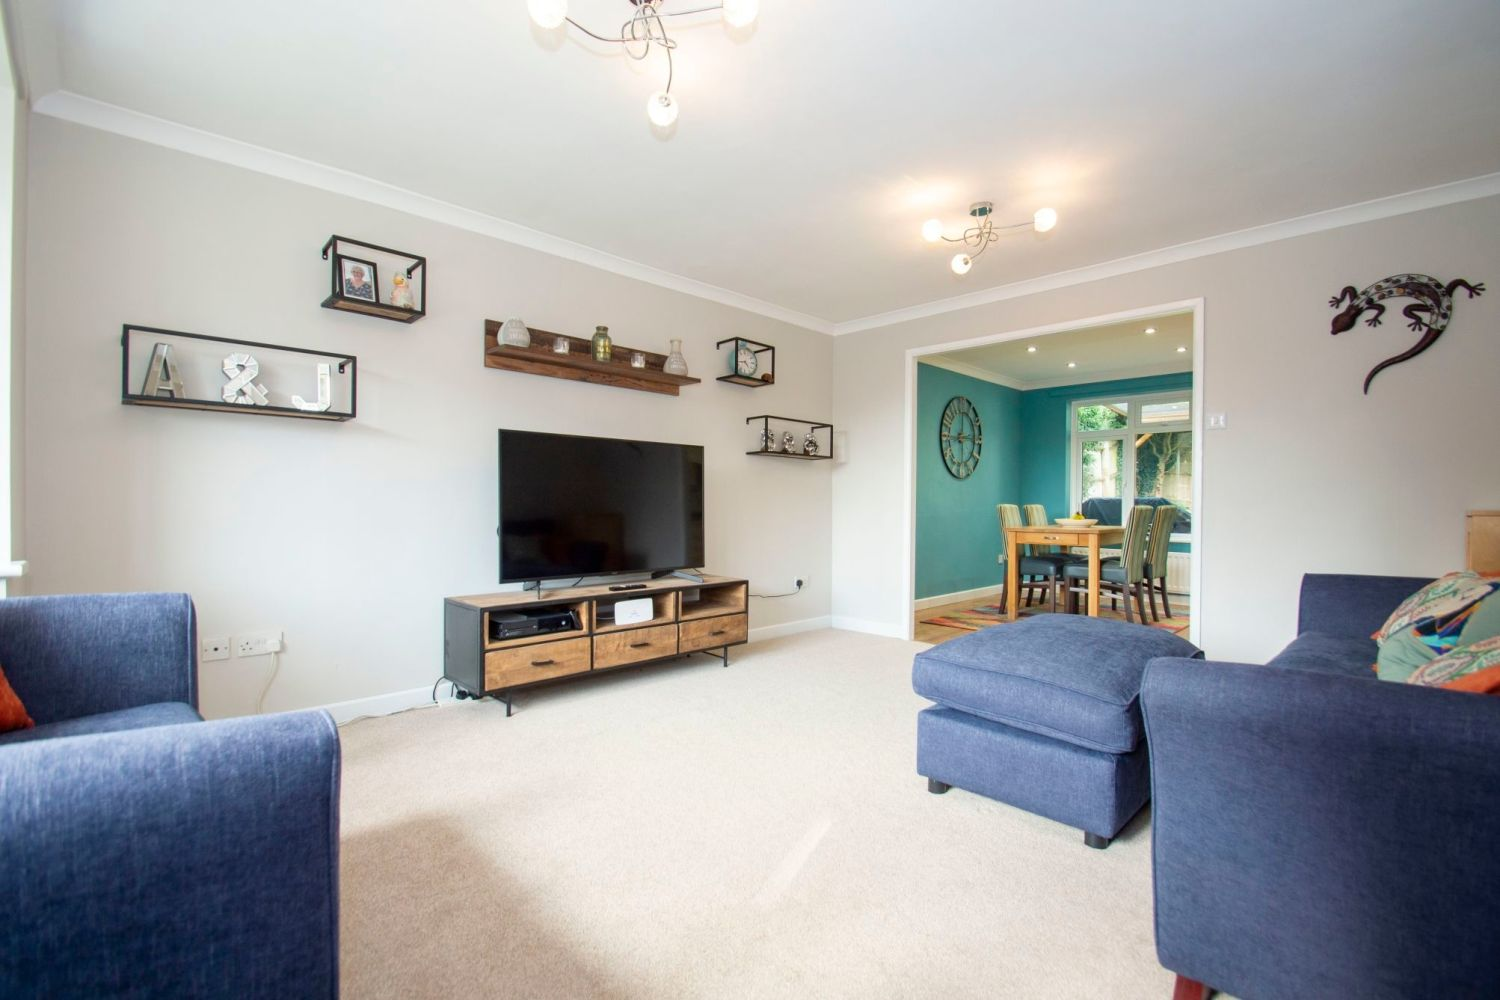 4 bed detached for sale in Packwood Close, Webheath 2